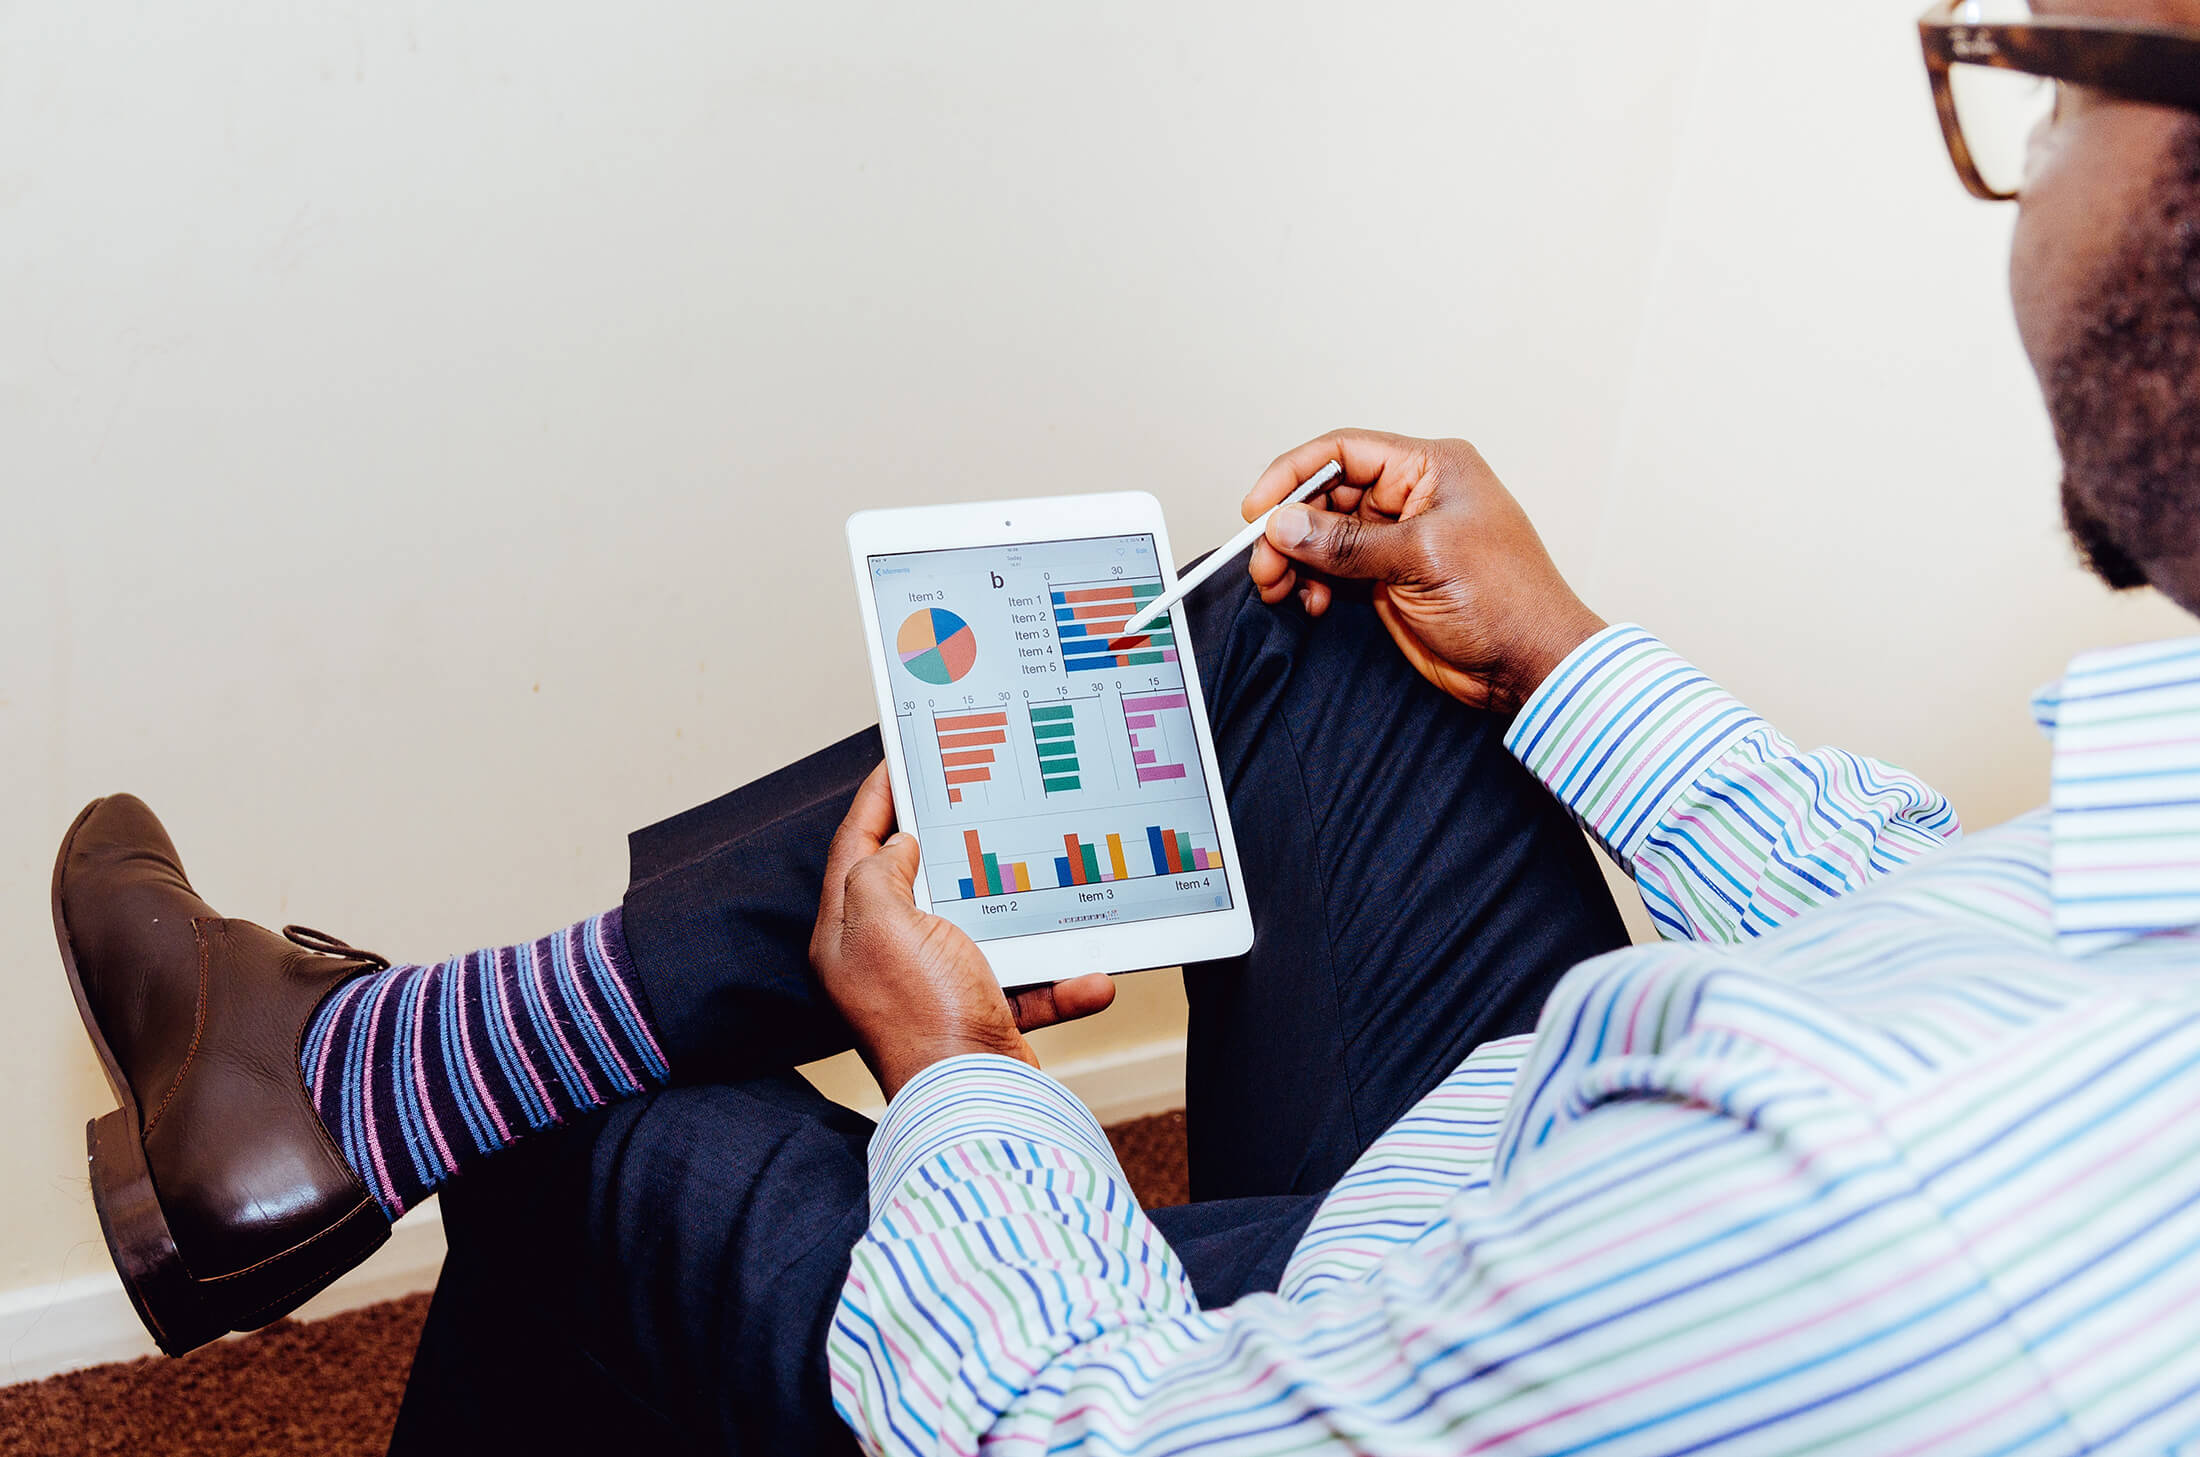 6 Tips for Setting Up Startup Financial Systems